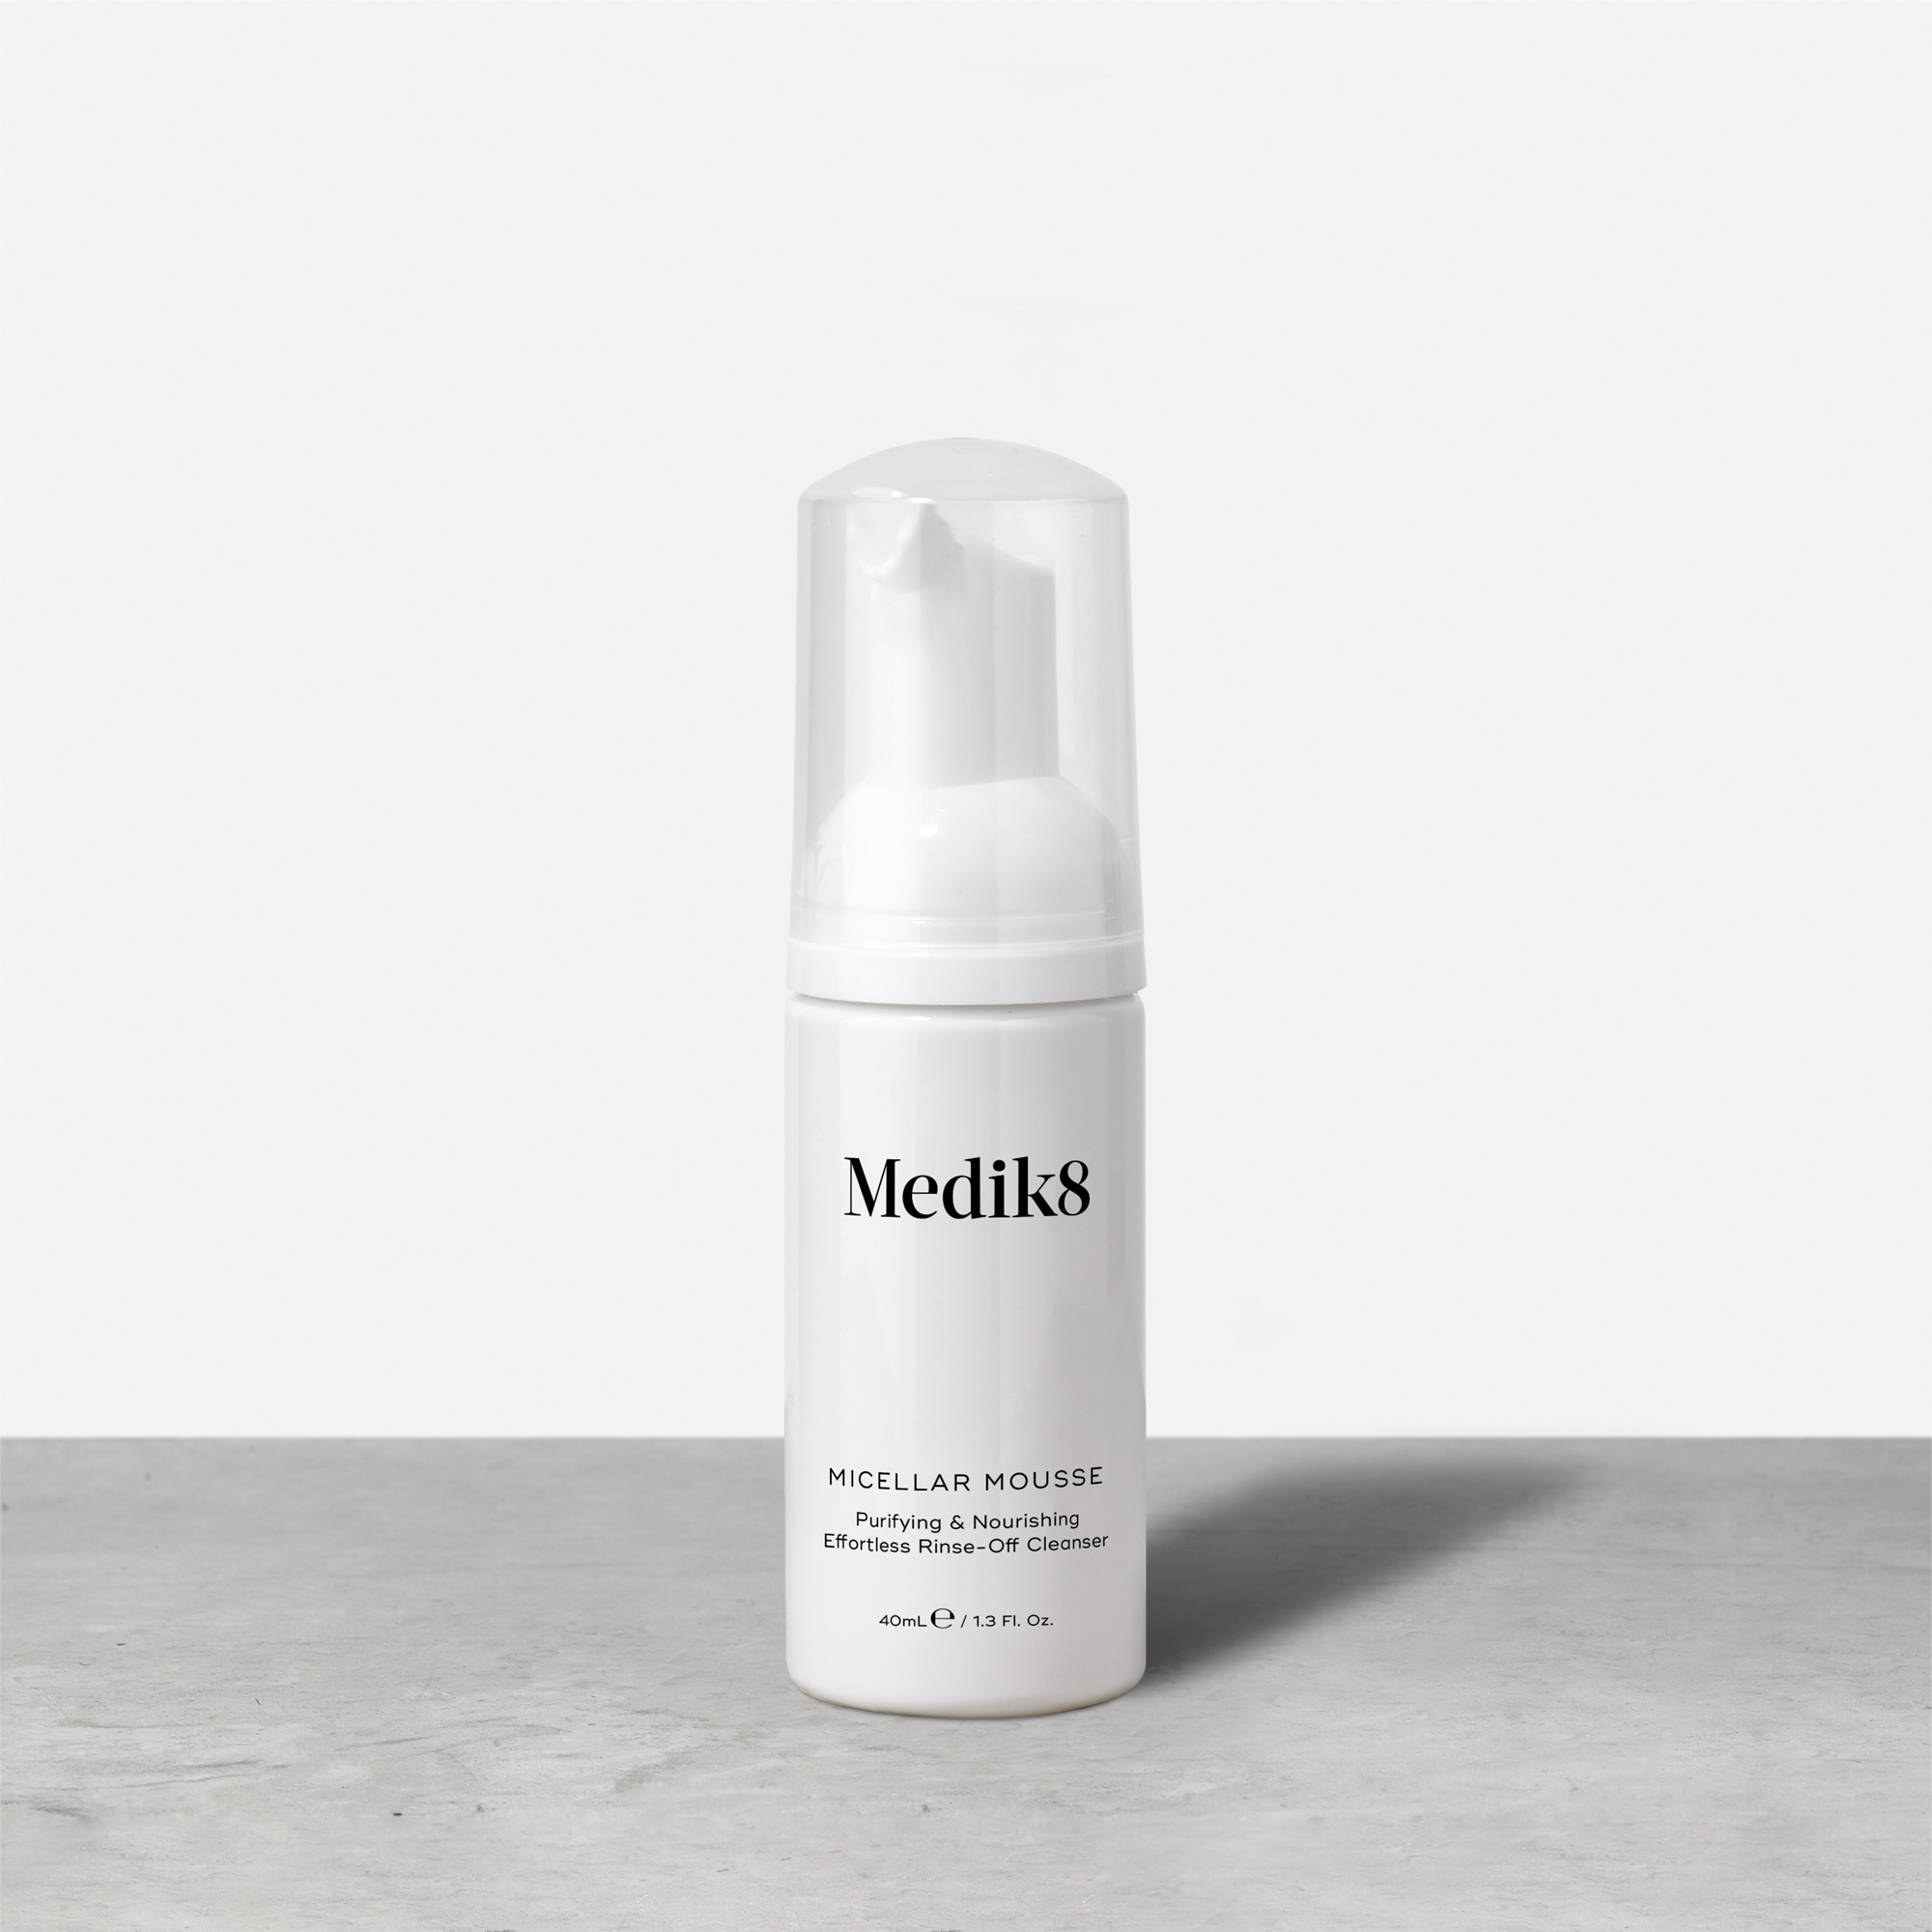 Try Me Size Micellar Mousse™ 40ml